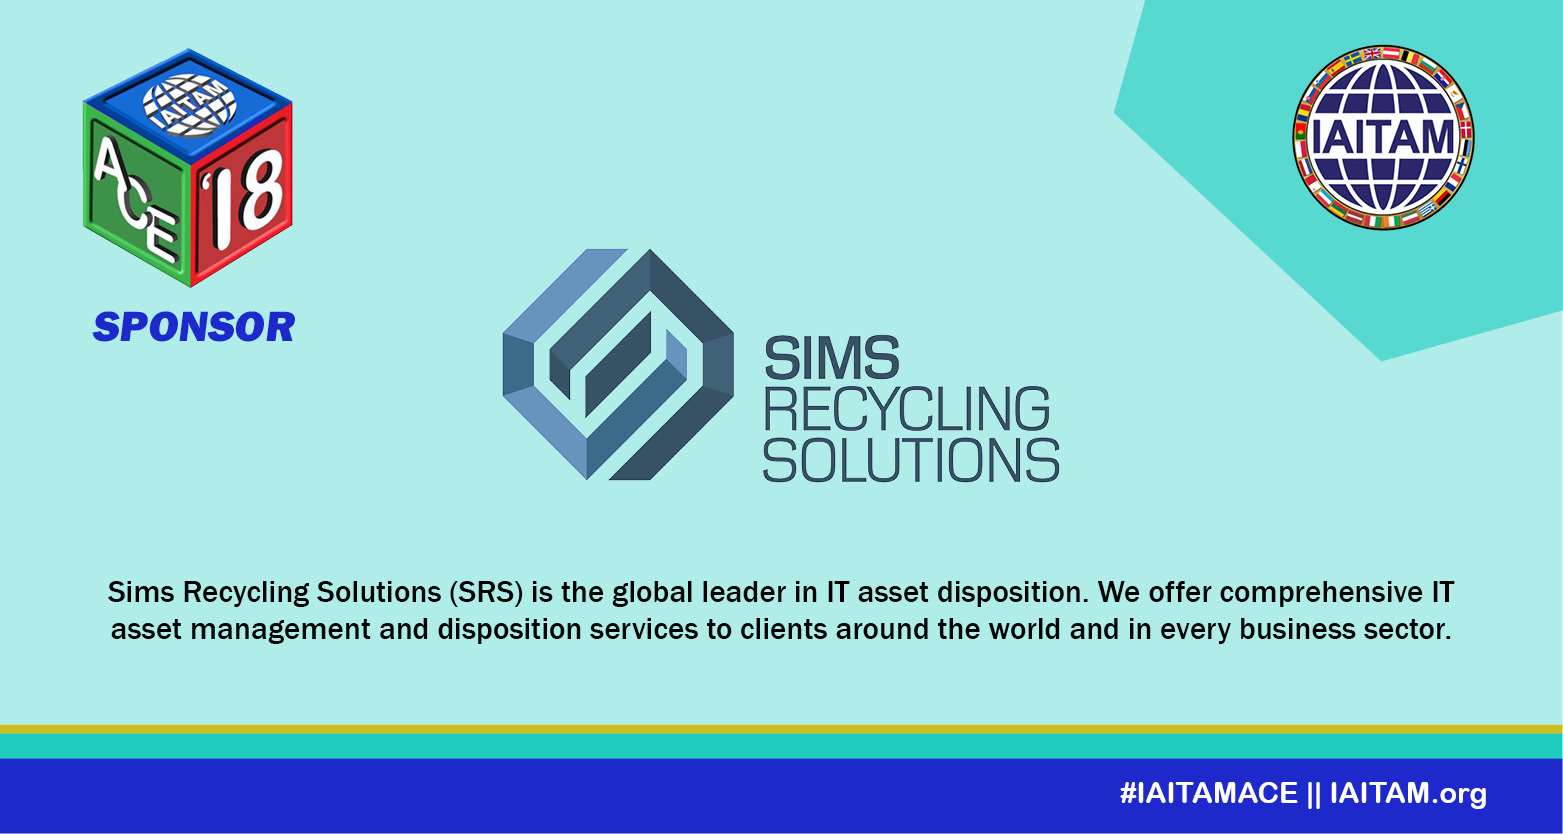 Thank you Sims Recycling Solutions, Sponsor at the IAITAM ACE